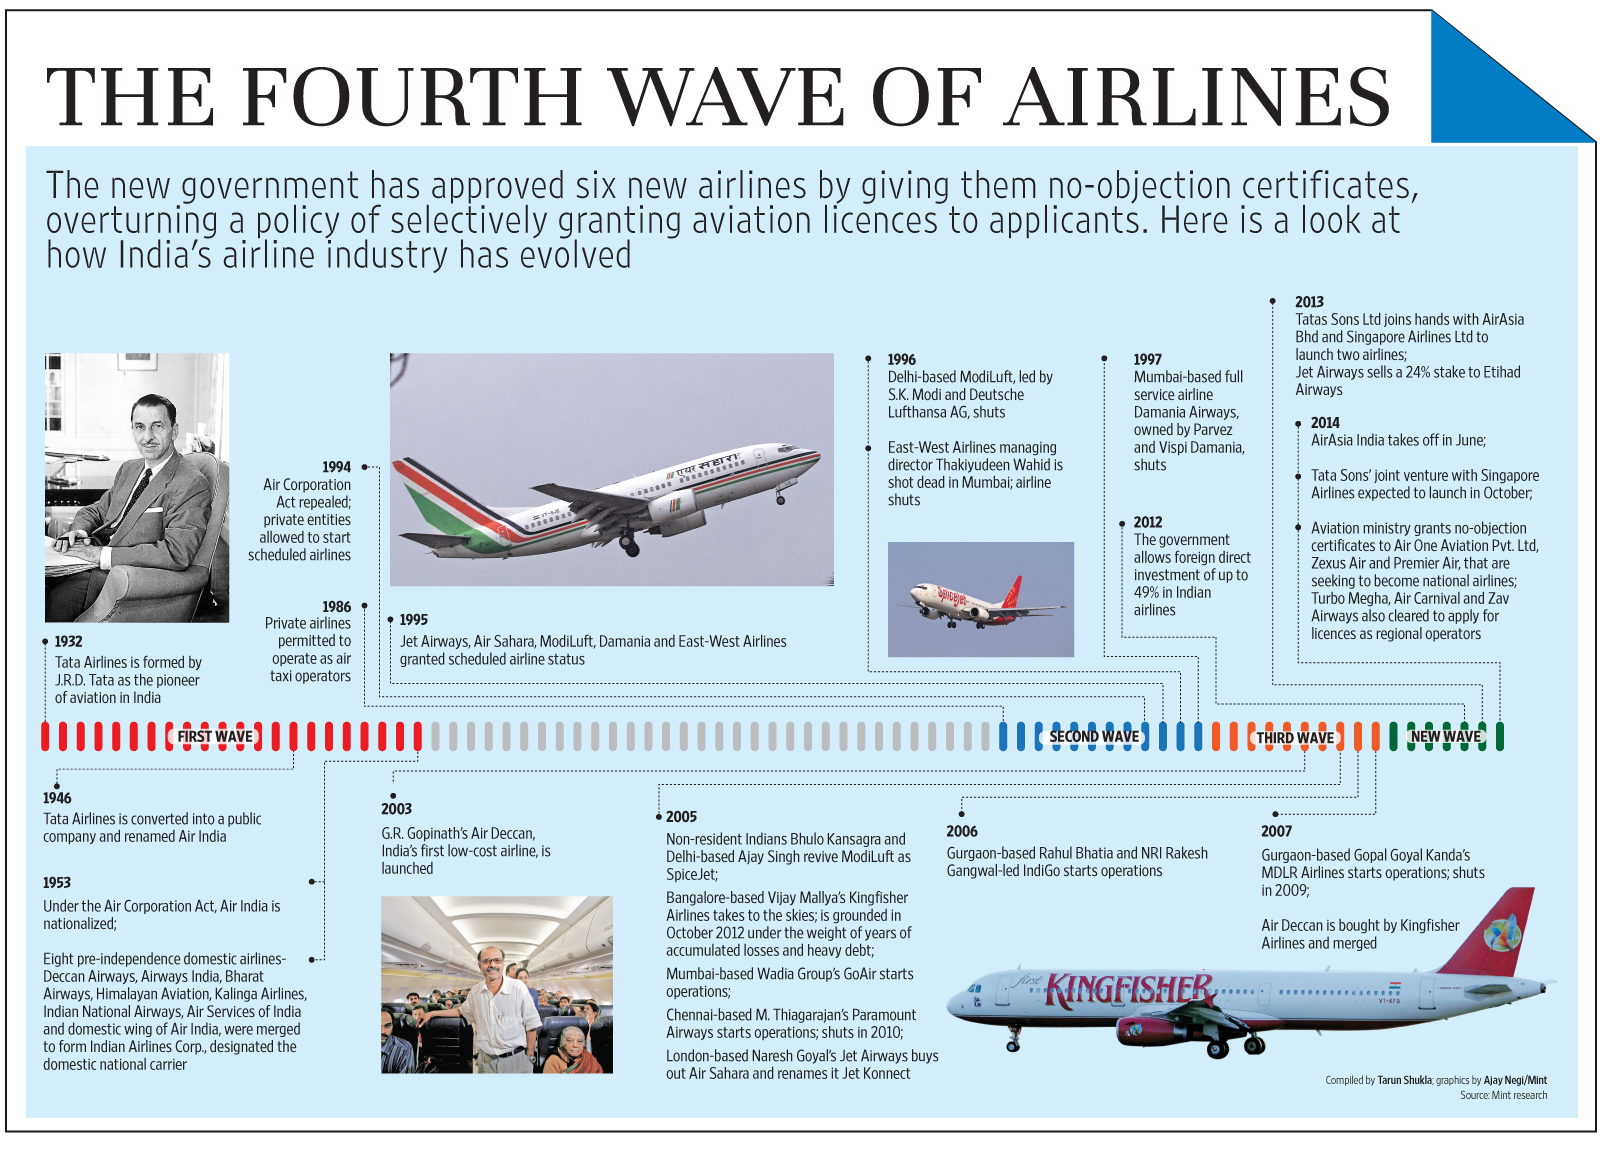 The fourth wave of airlines